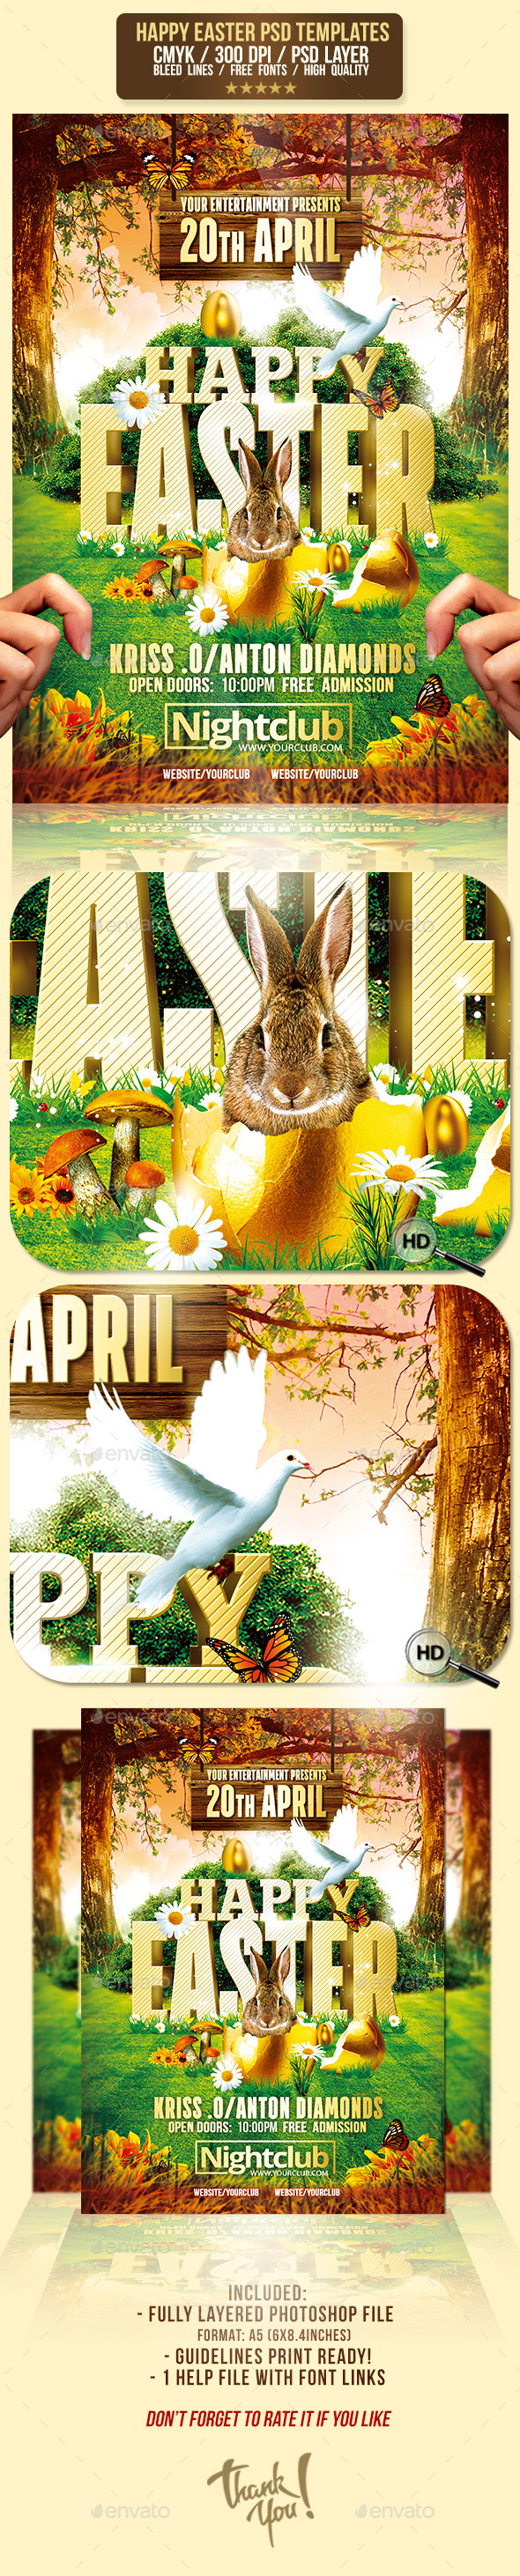 GraphicRiver Happy Easter Event Psd Flyer Template 10560184